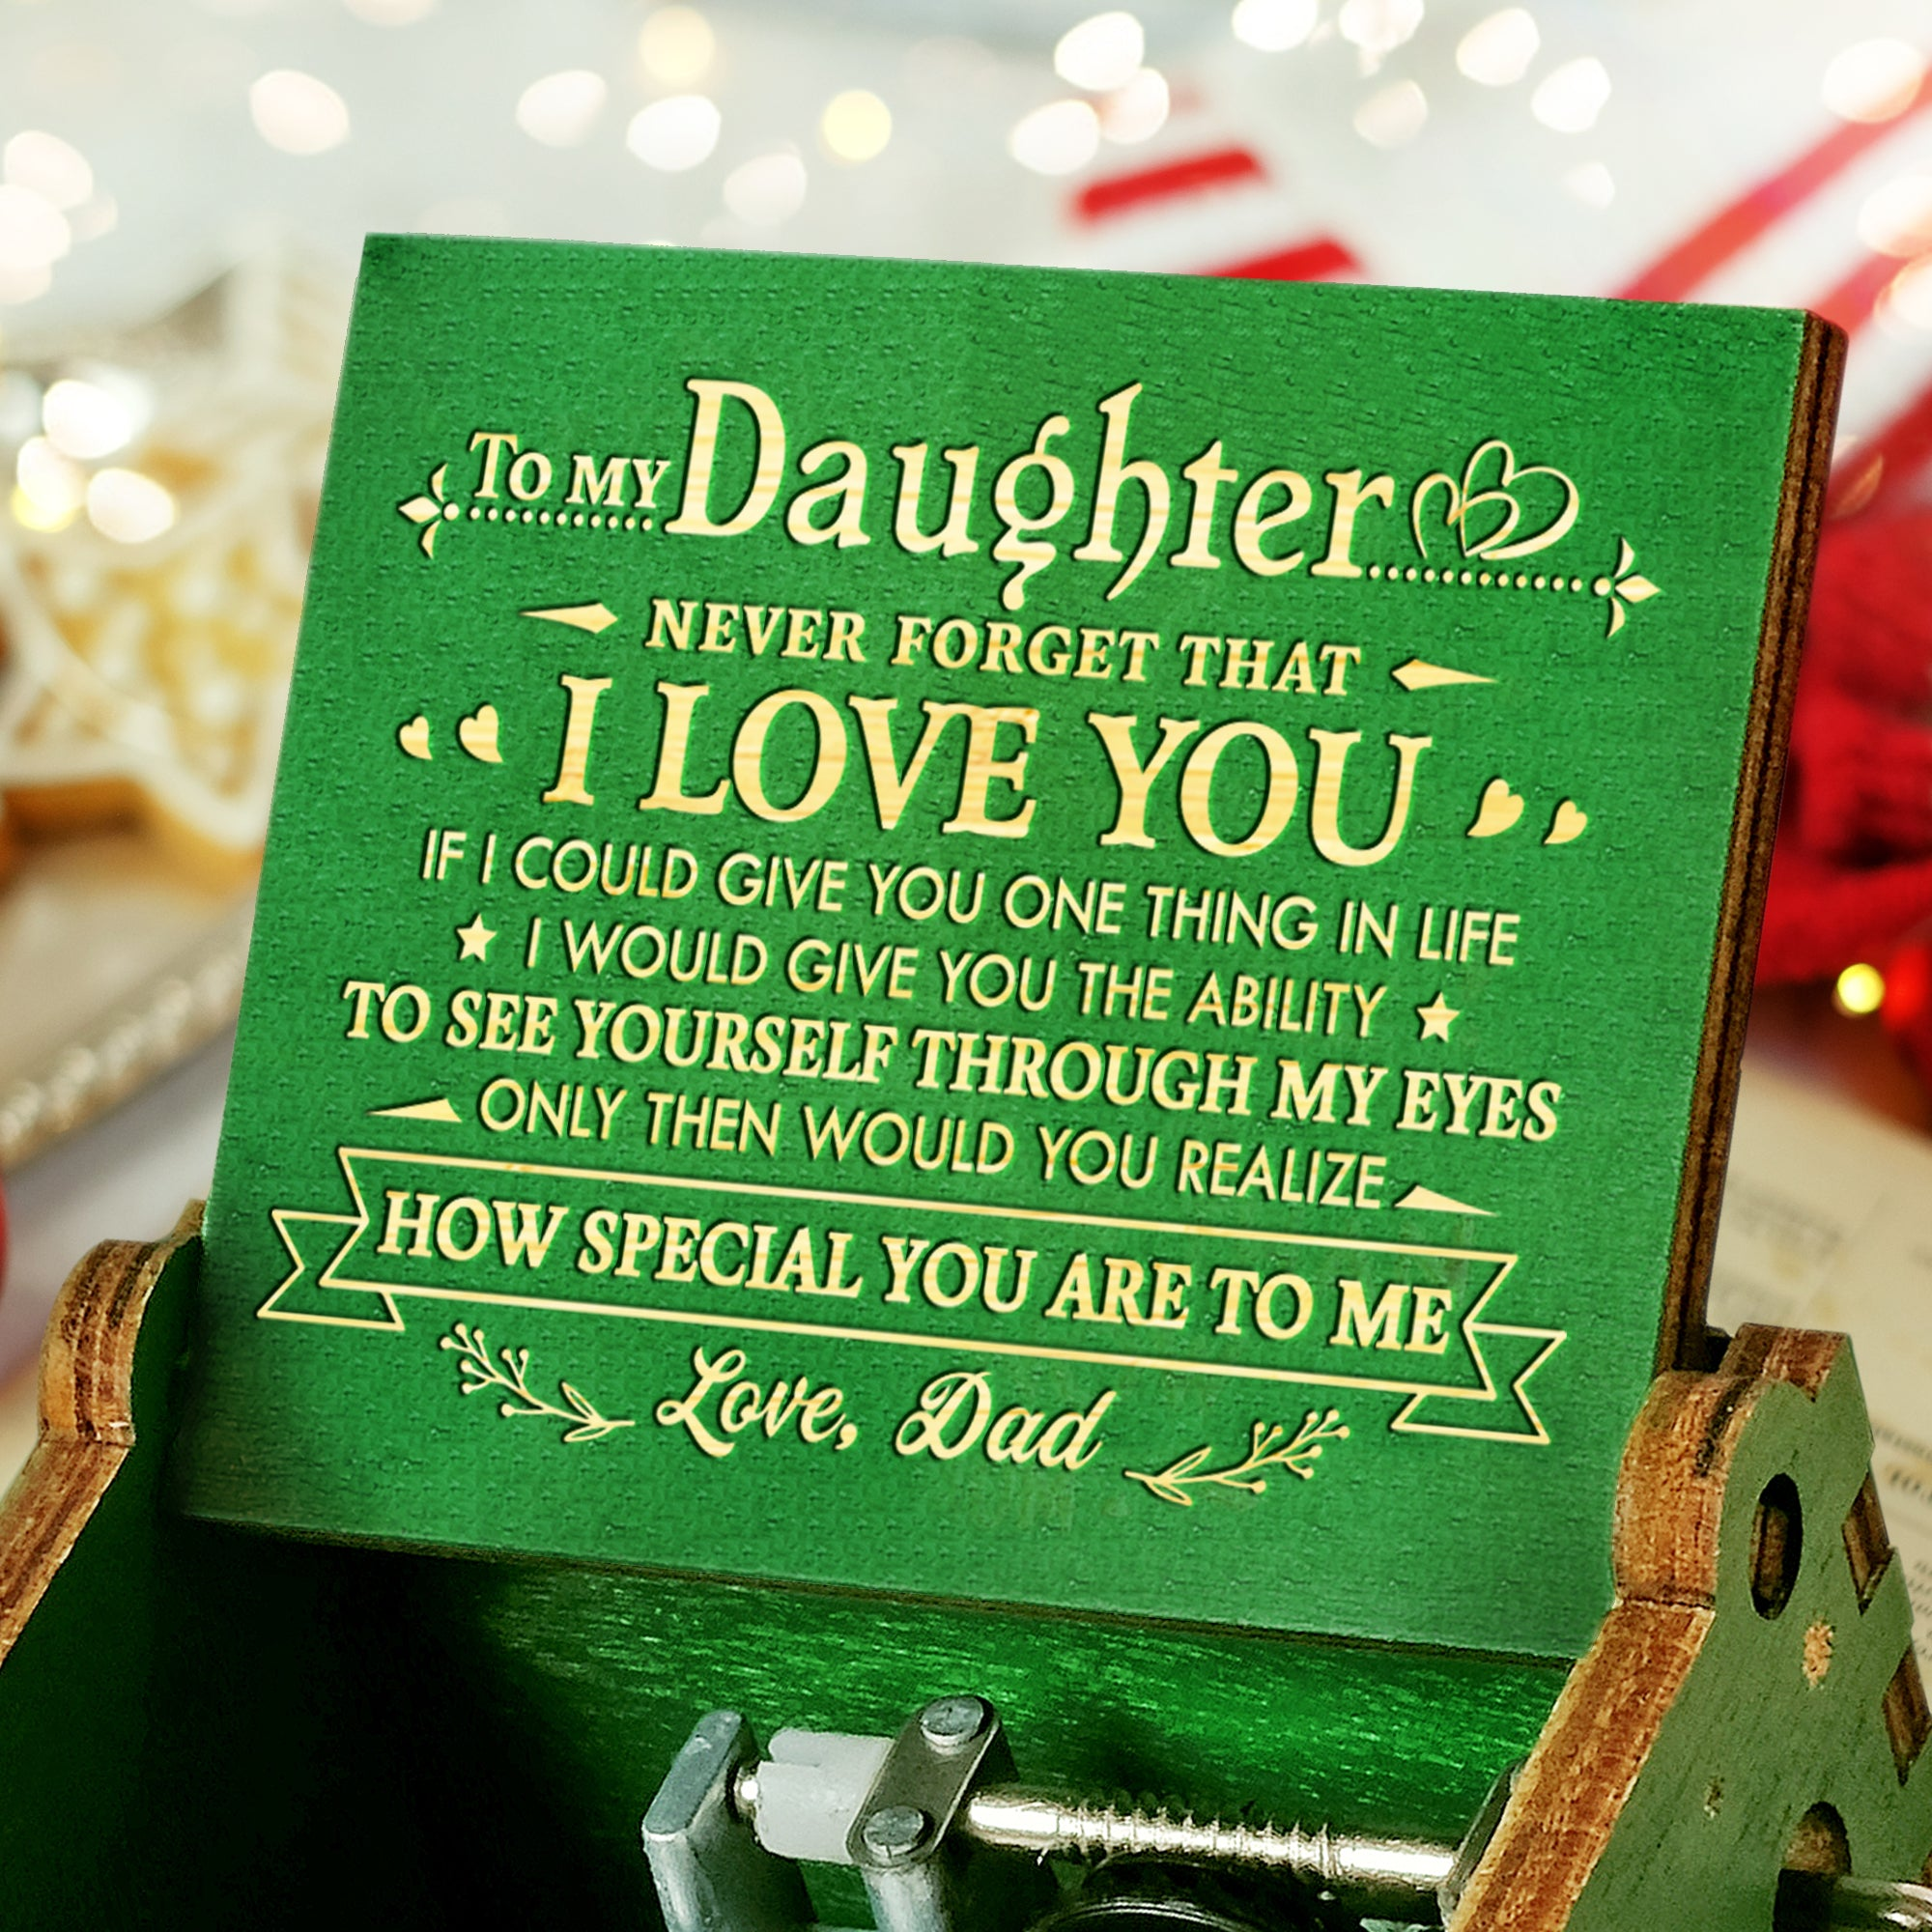 Dad To Daughter - Braver, Stronger, Smarter  - Engraved Music Box